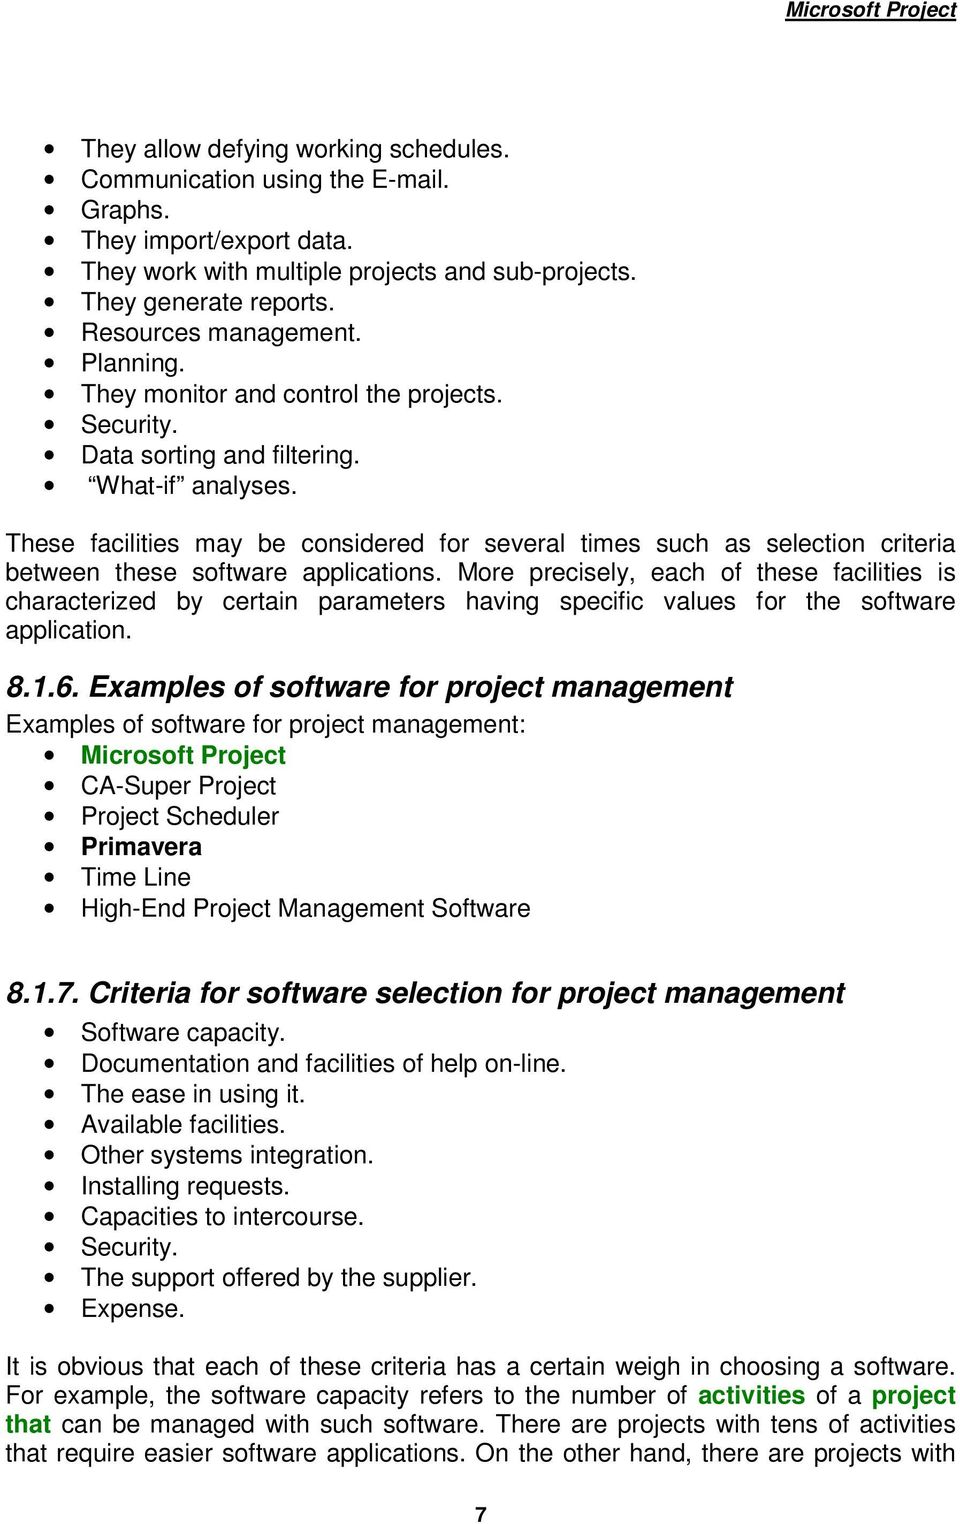 These facilities may be considered for several times such as selection criteria between these software applications.